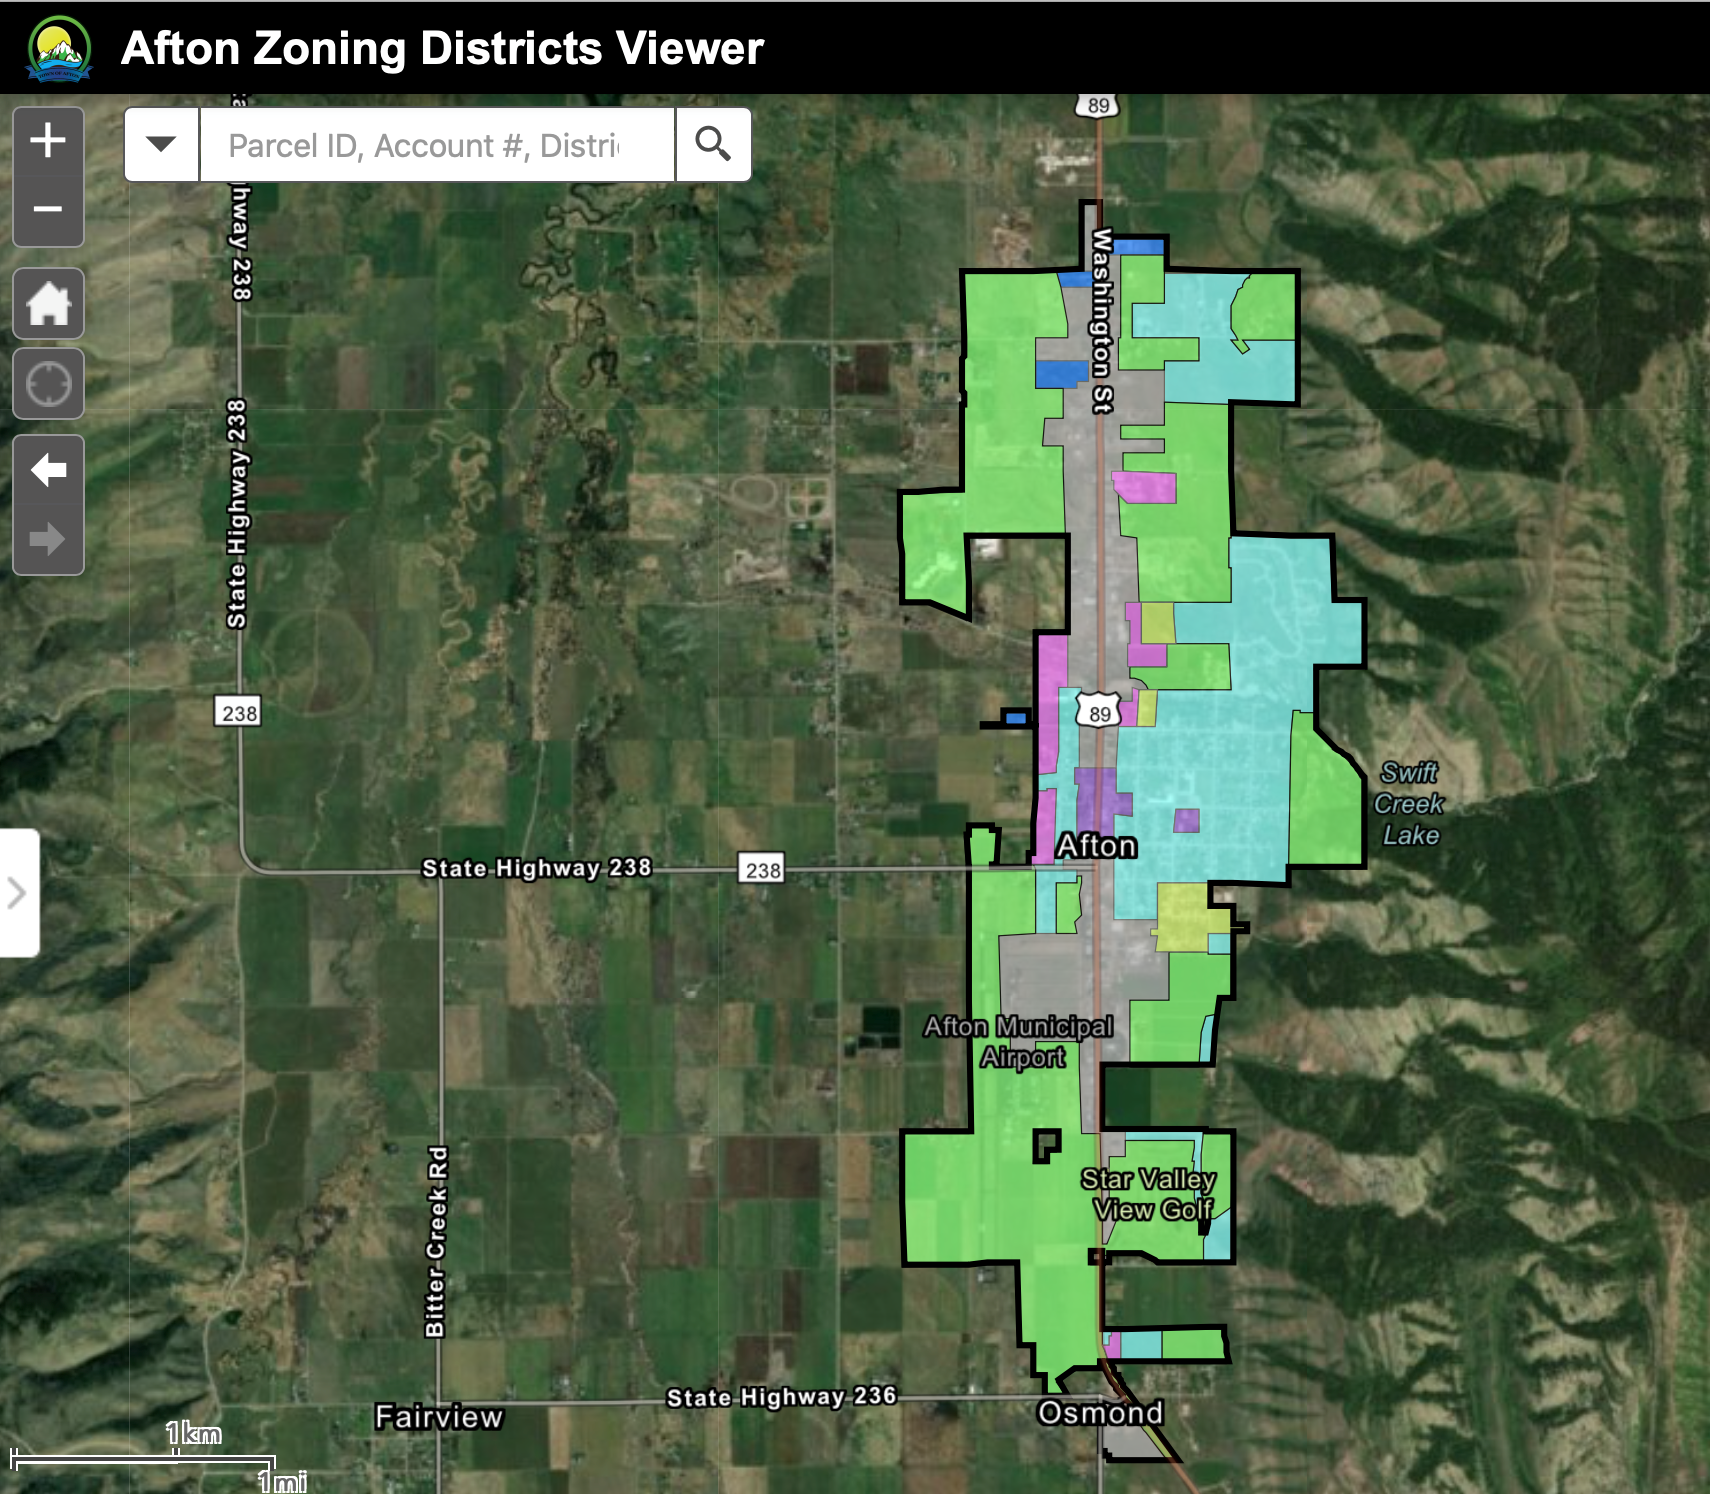 zONING dISTRICT vIEWER